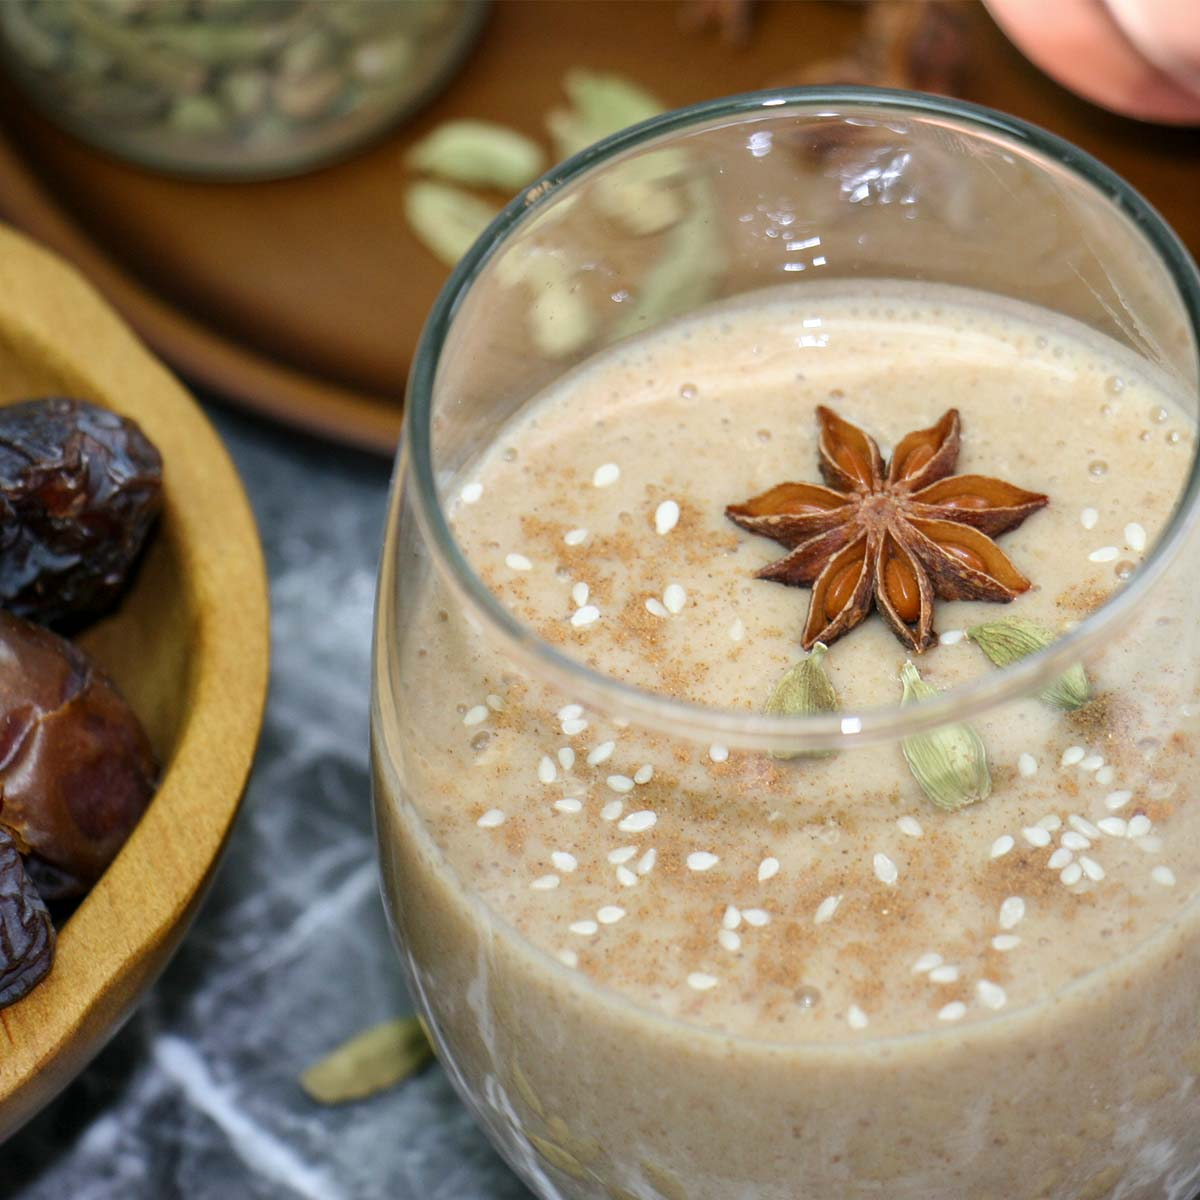 Spiced Date Breakfast Smoothie